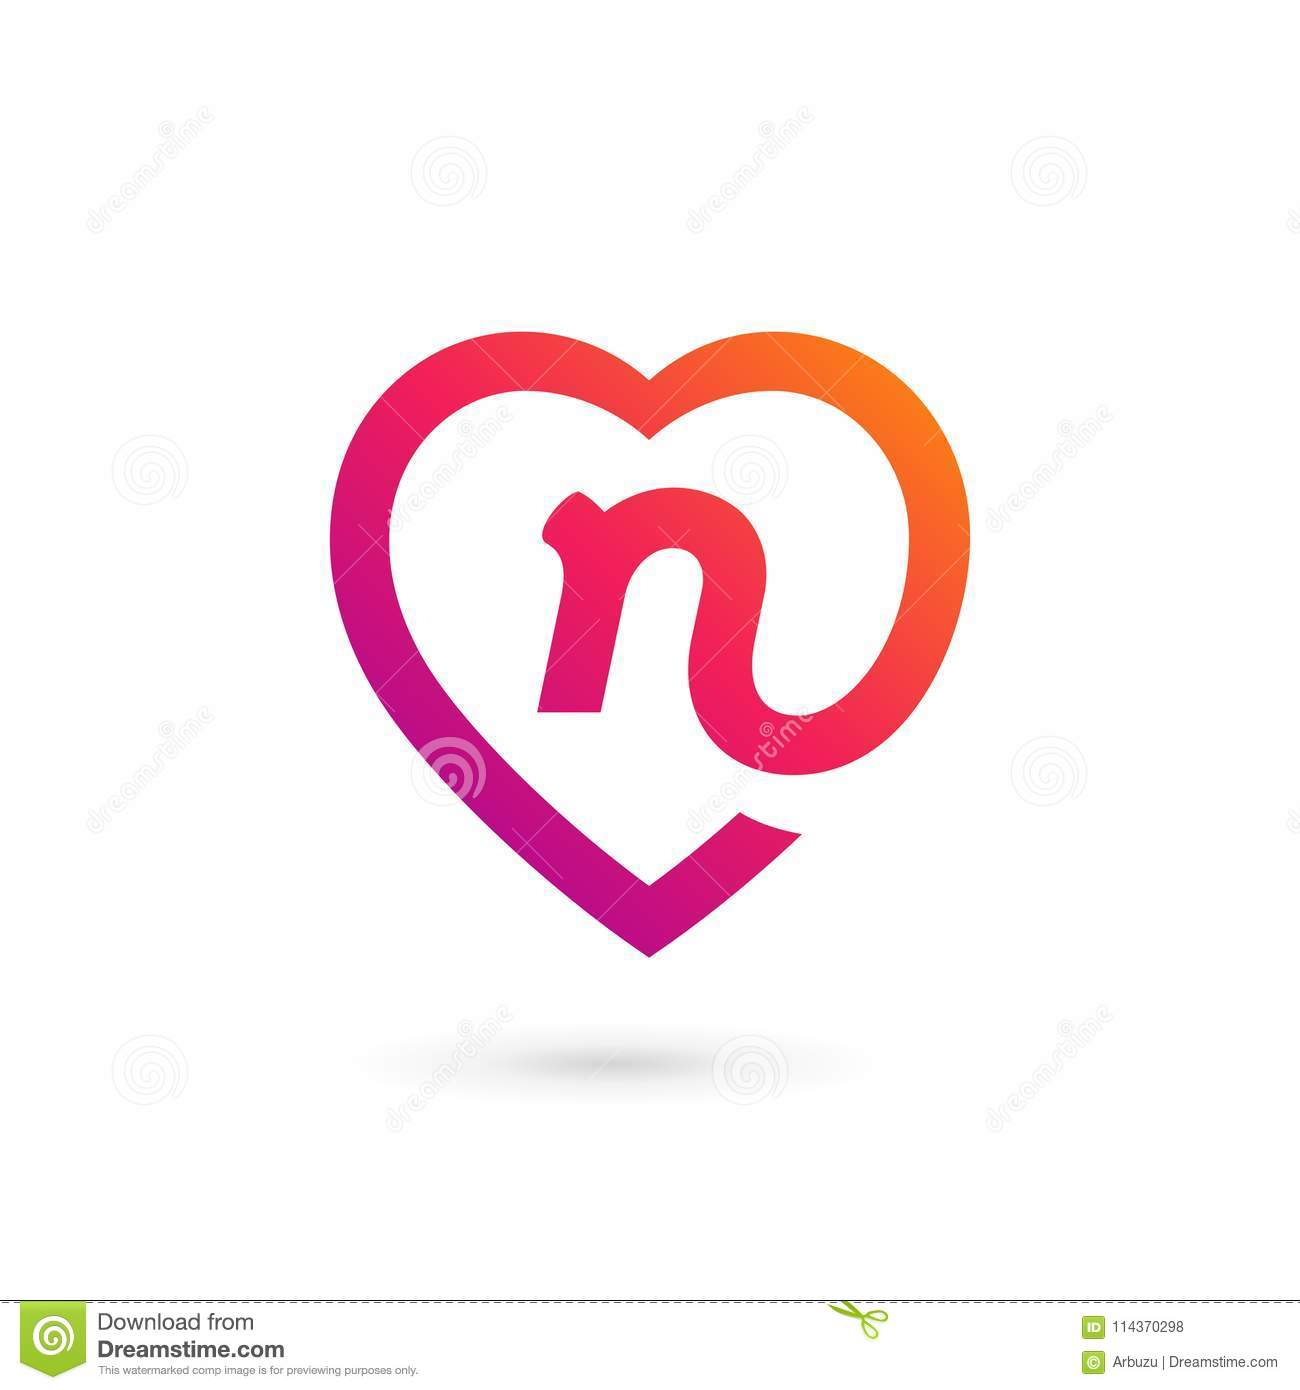 letter n heart logo icon design template elements stock vector